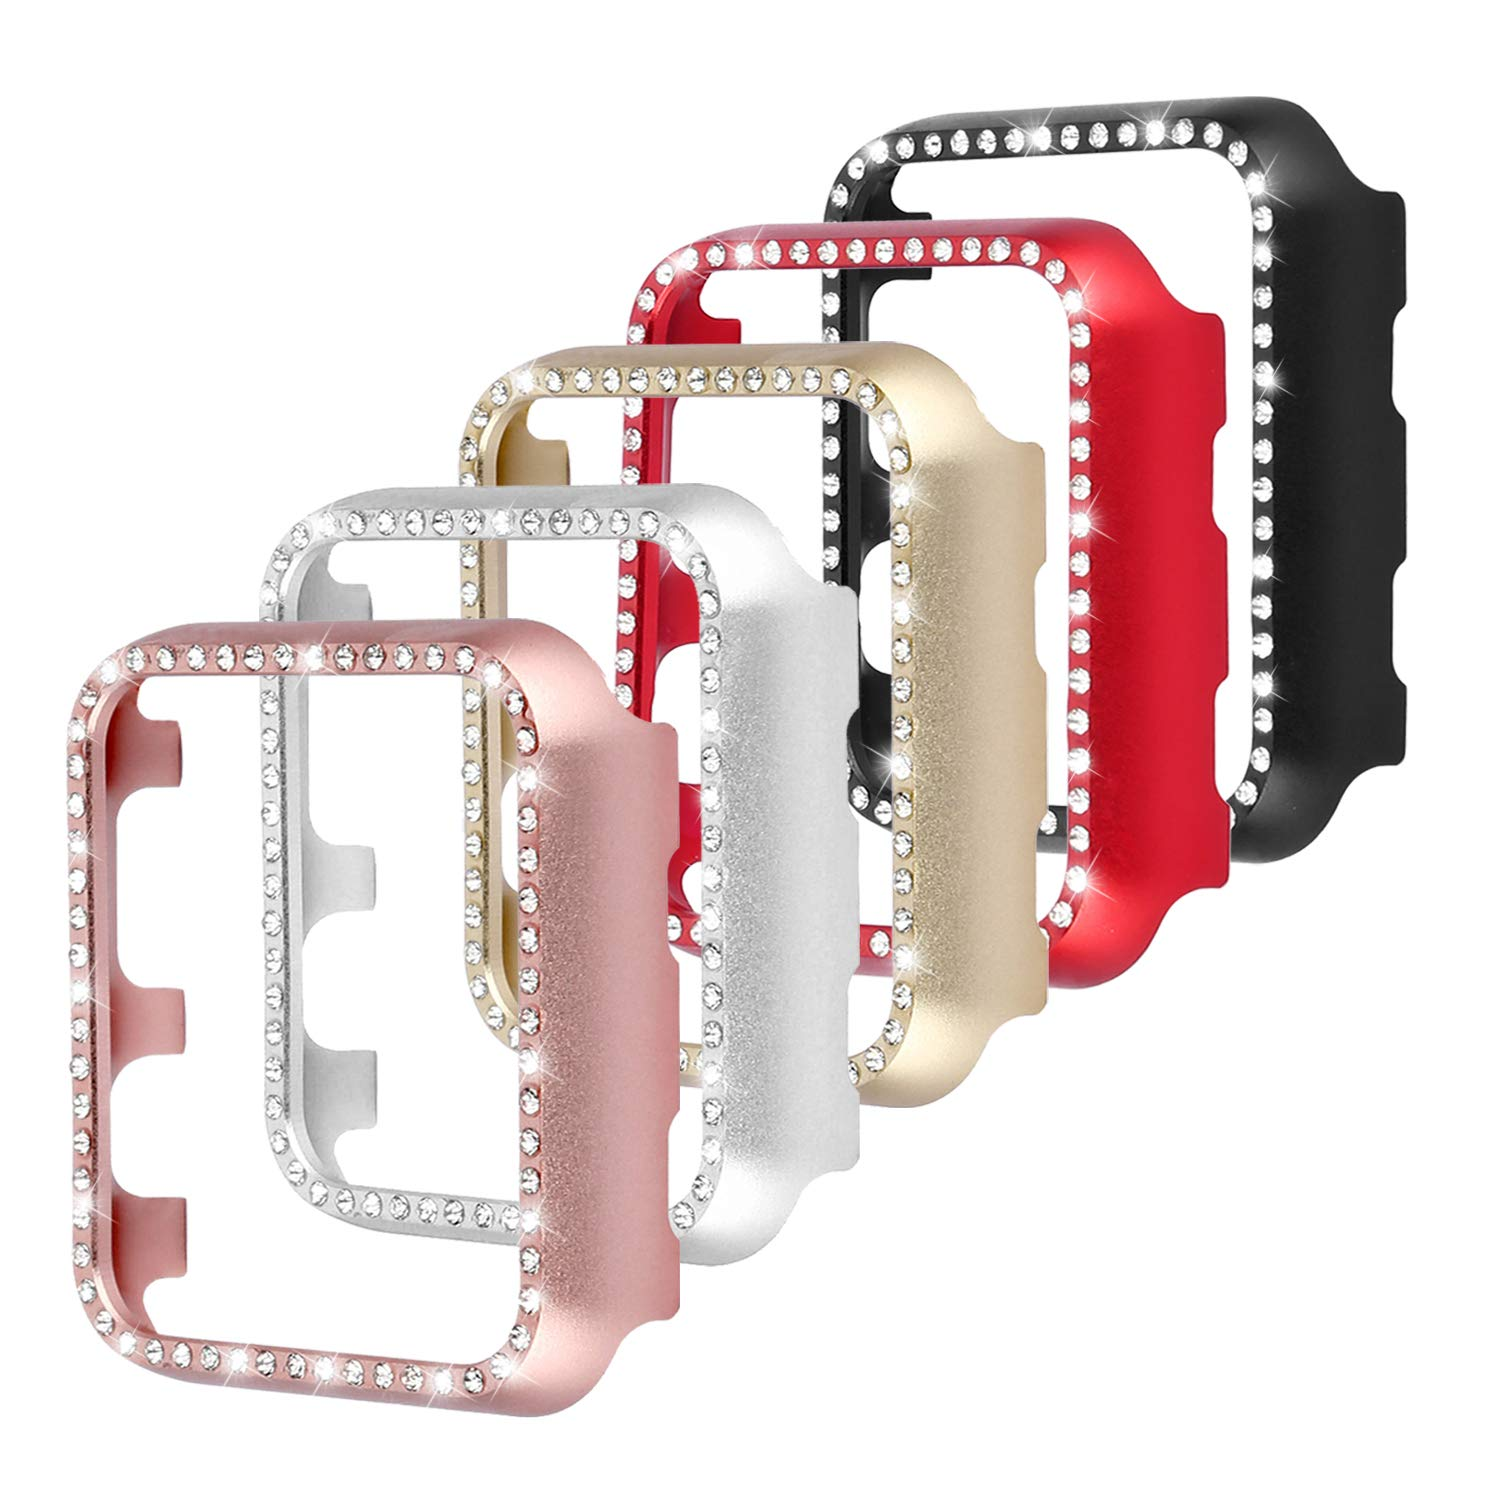 Leotop Compatible with Apple Watch Case Series 4 40mm 44mm, Metal Bumper Protective Cover Bling Shiny Frame Rhinestone Glitter Diamond Compatible iWatch for Women Girls (5 Color Pack, 40mm)